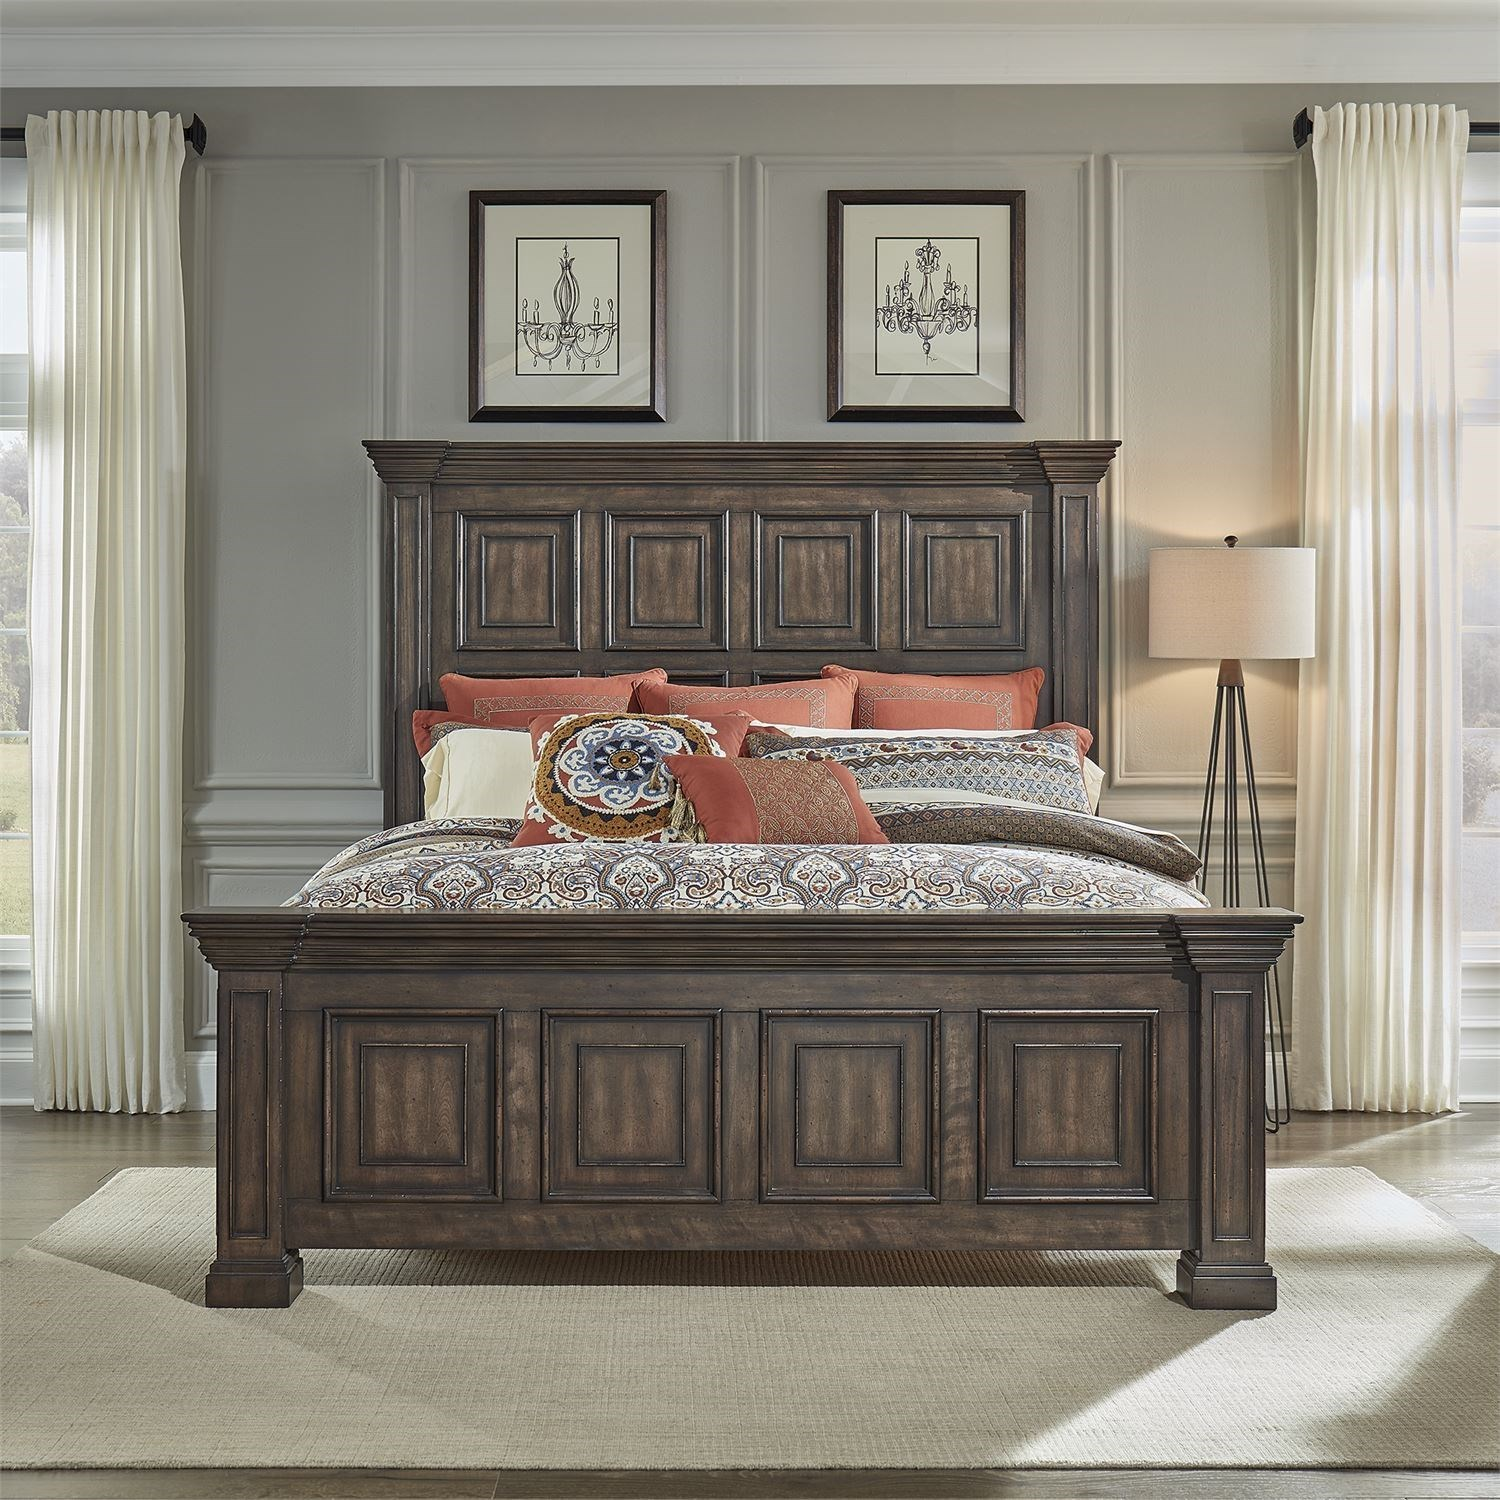 Big Valley King Panel Bed by Liberty Furniture at Catalog Outlet